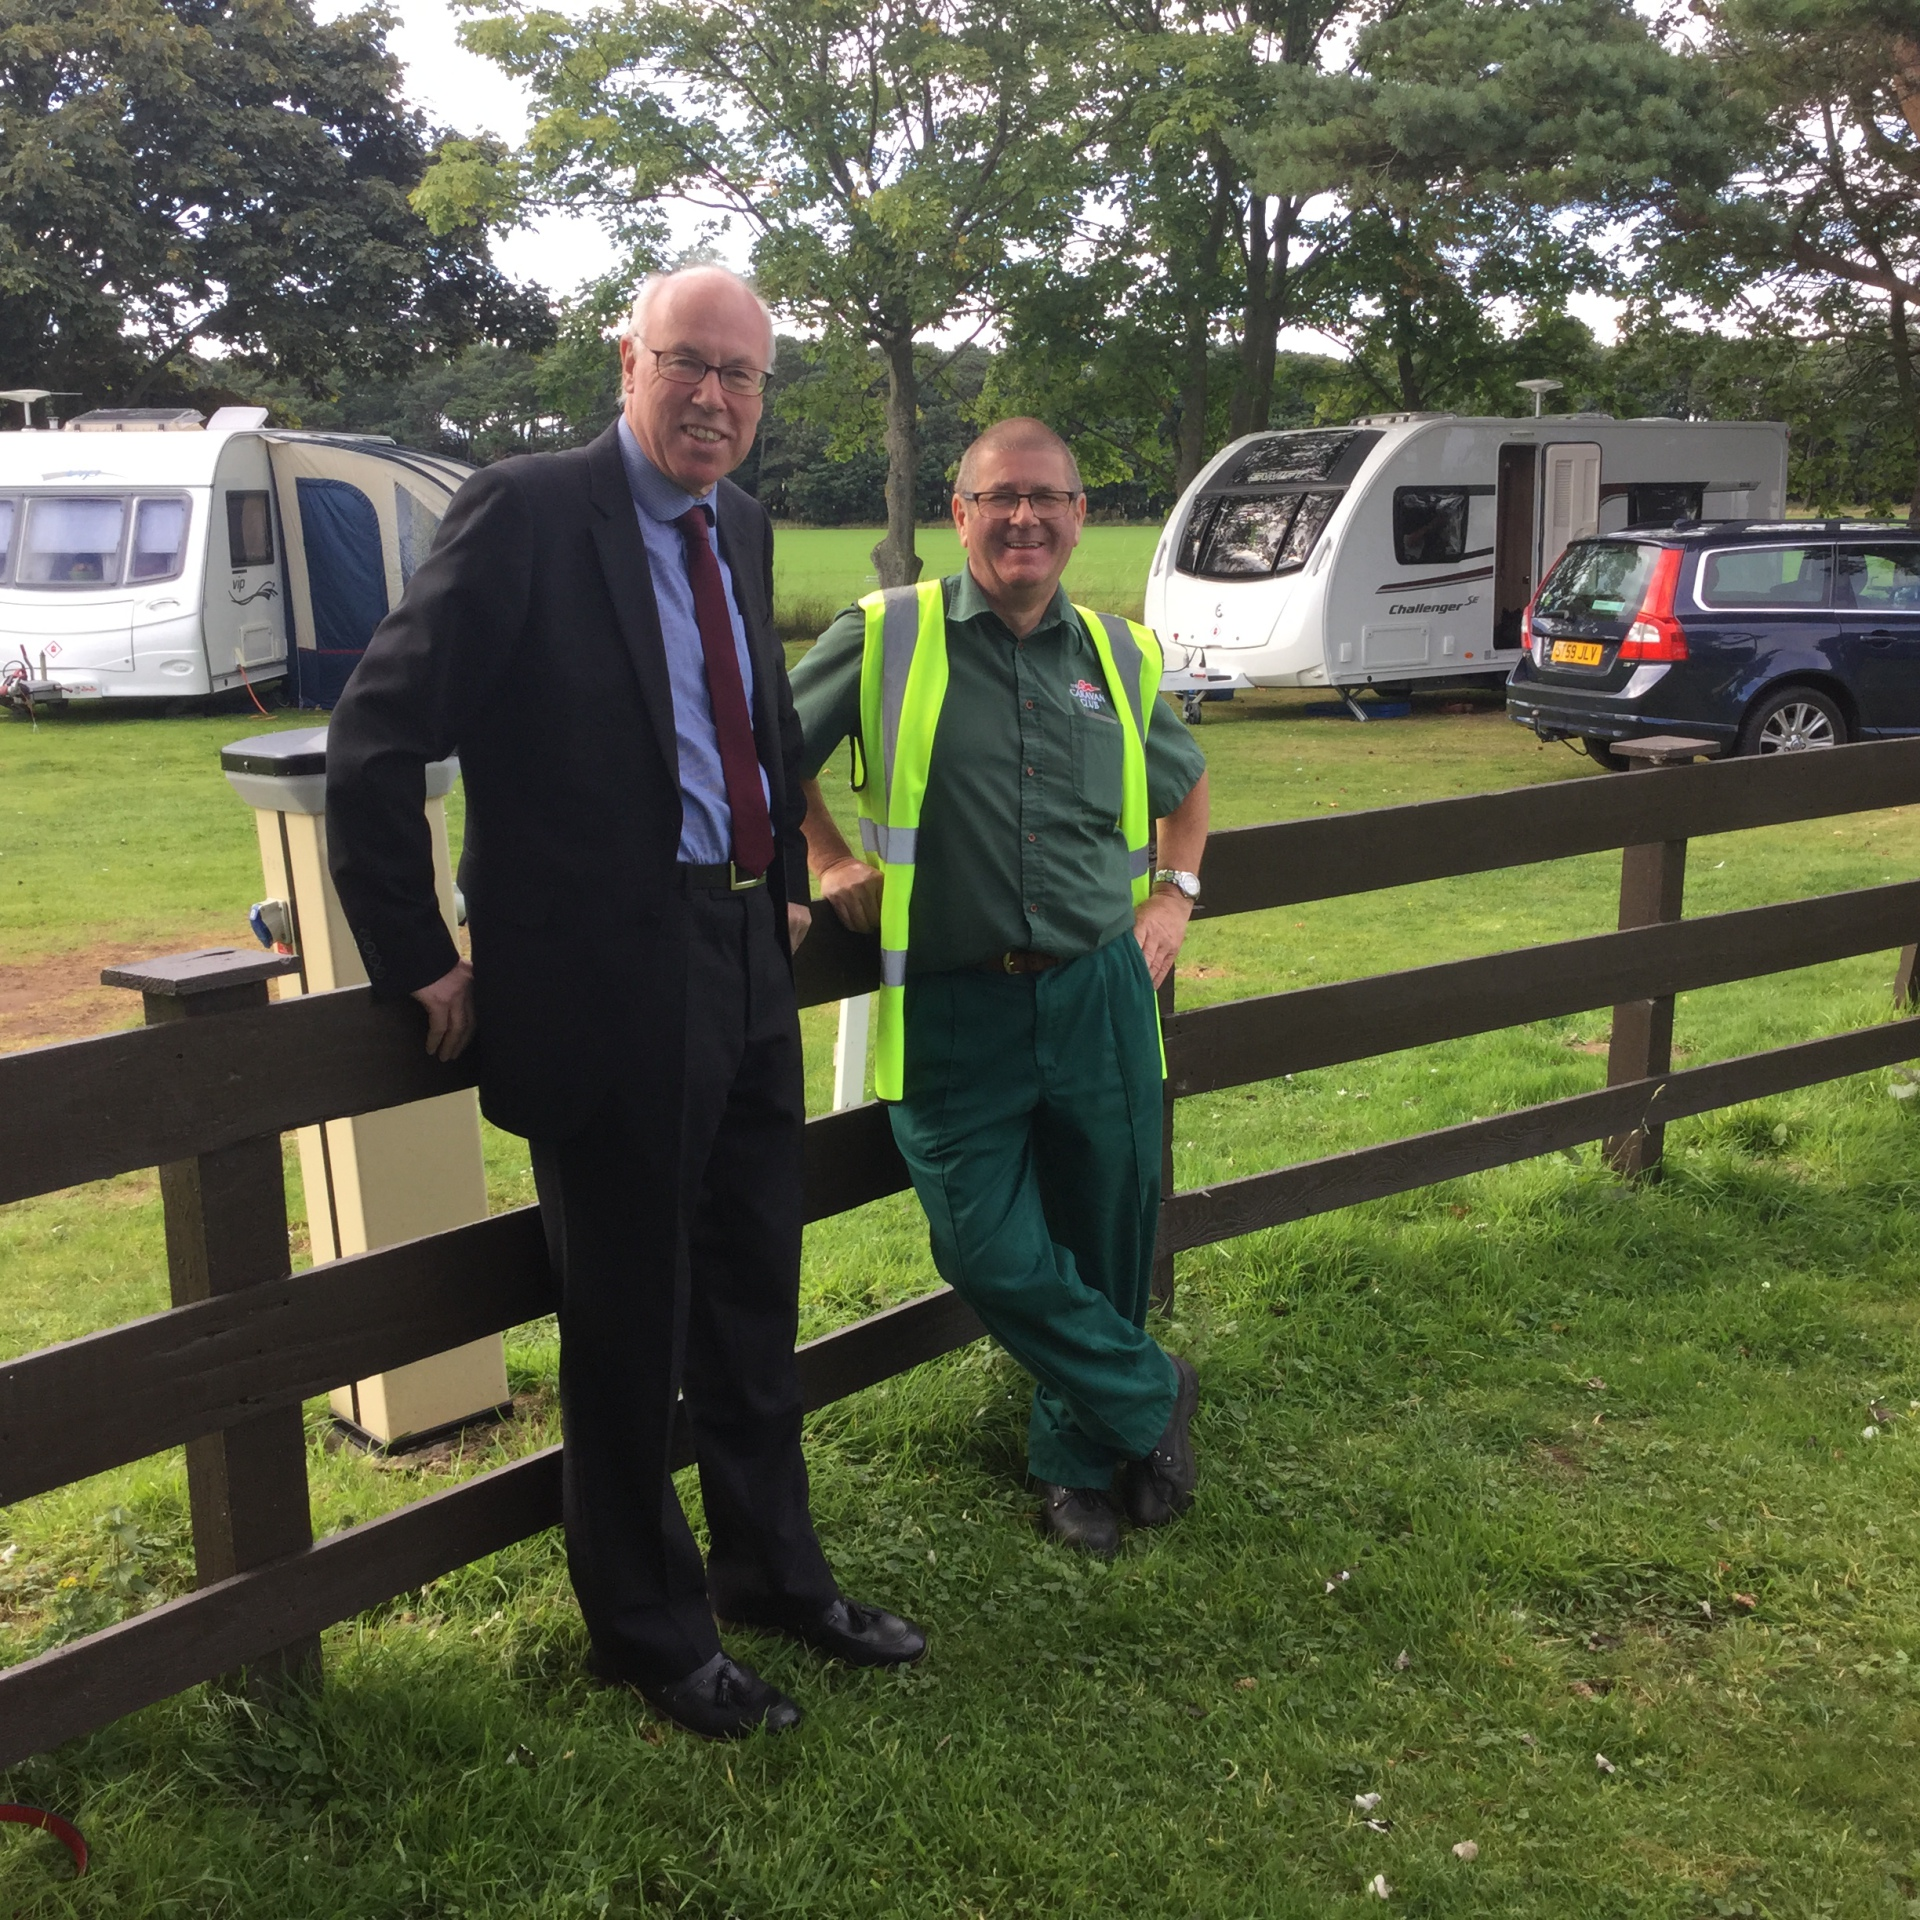 Visiting the Caravan Club site at Yellowcraigs